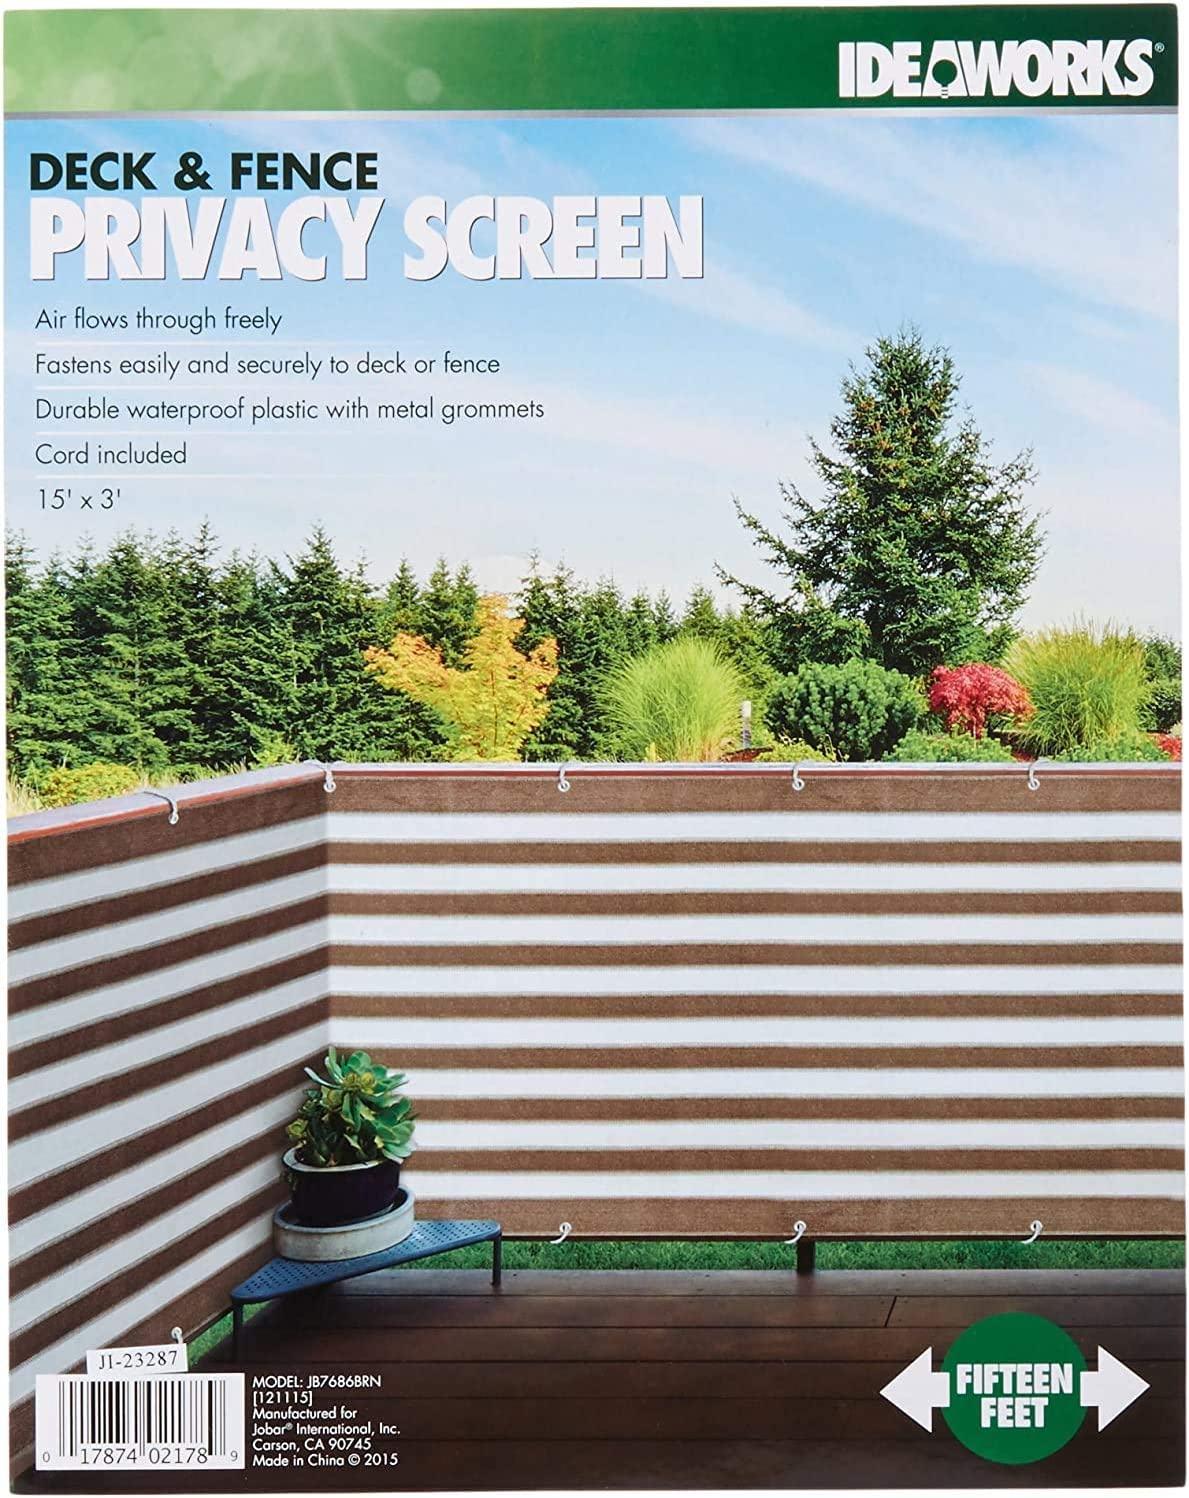 IdeaWorks New Deck Fence Privacy Sc 5 ☆ popular Waterproof Durable Limited time sale Netting